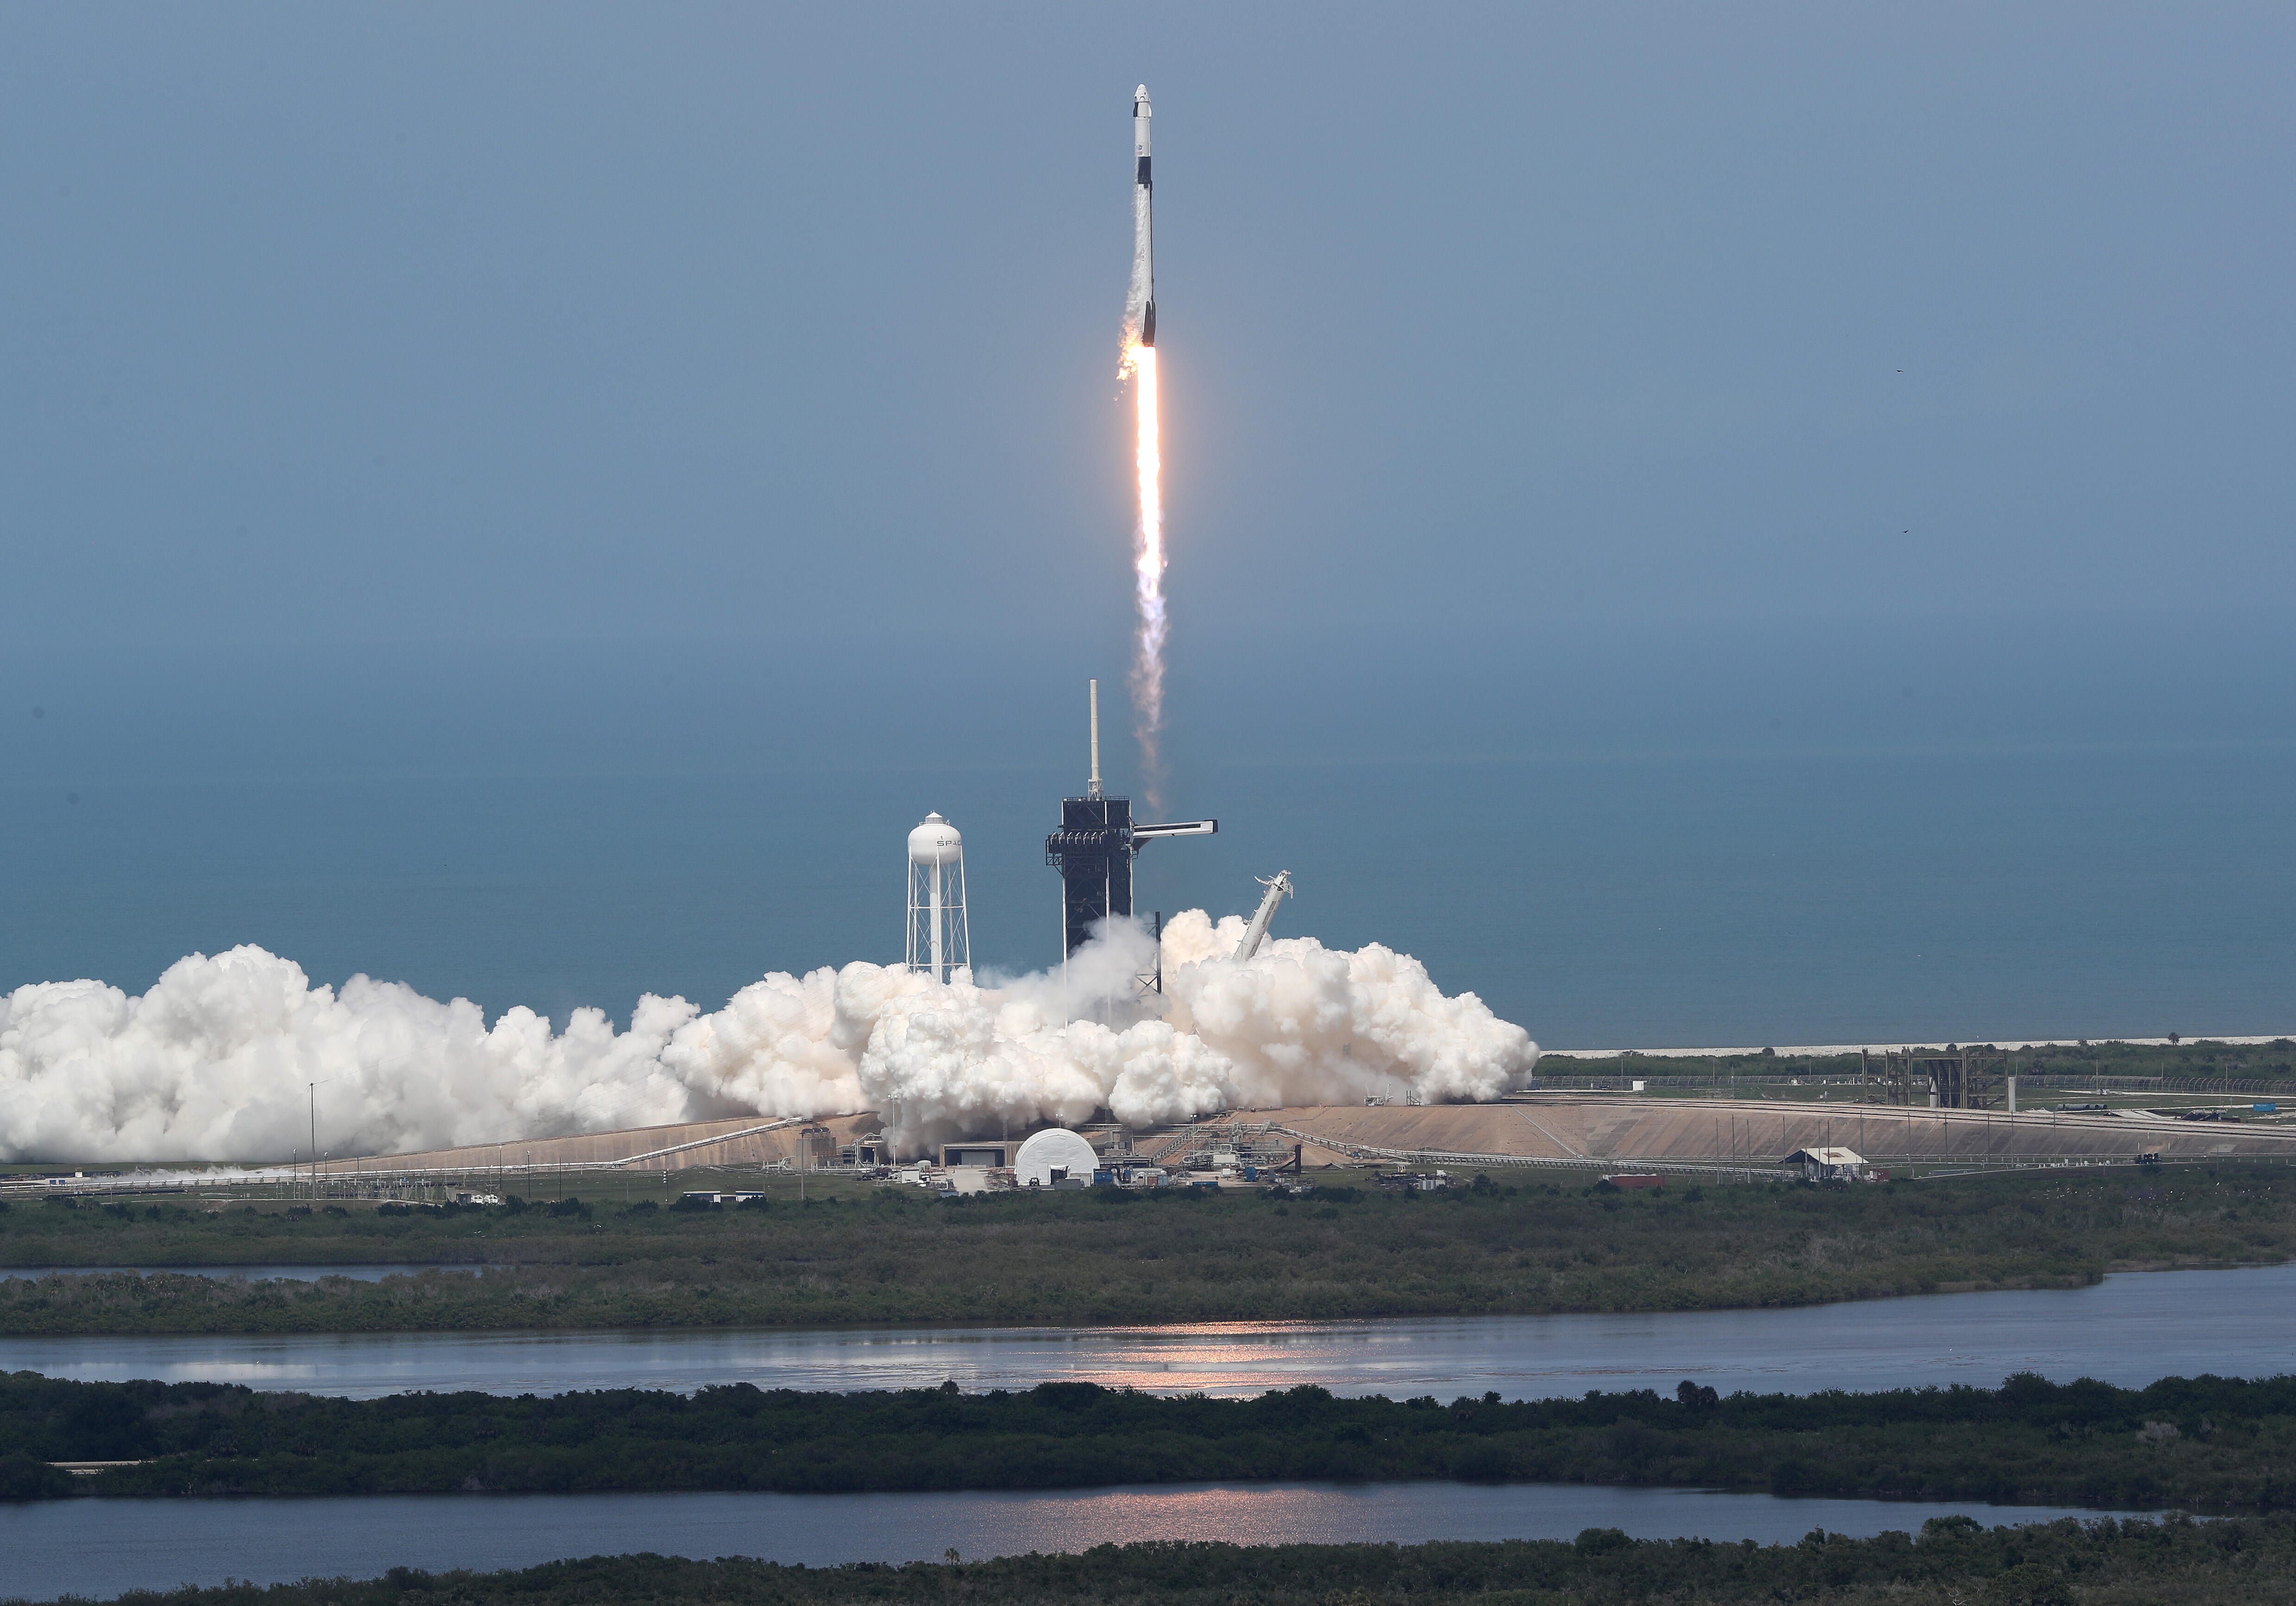 SpaceX Crew Dragon launches atop Falcon 9 rocket